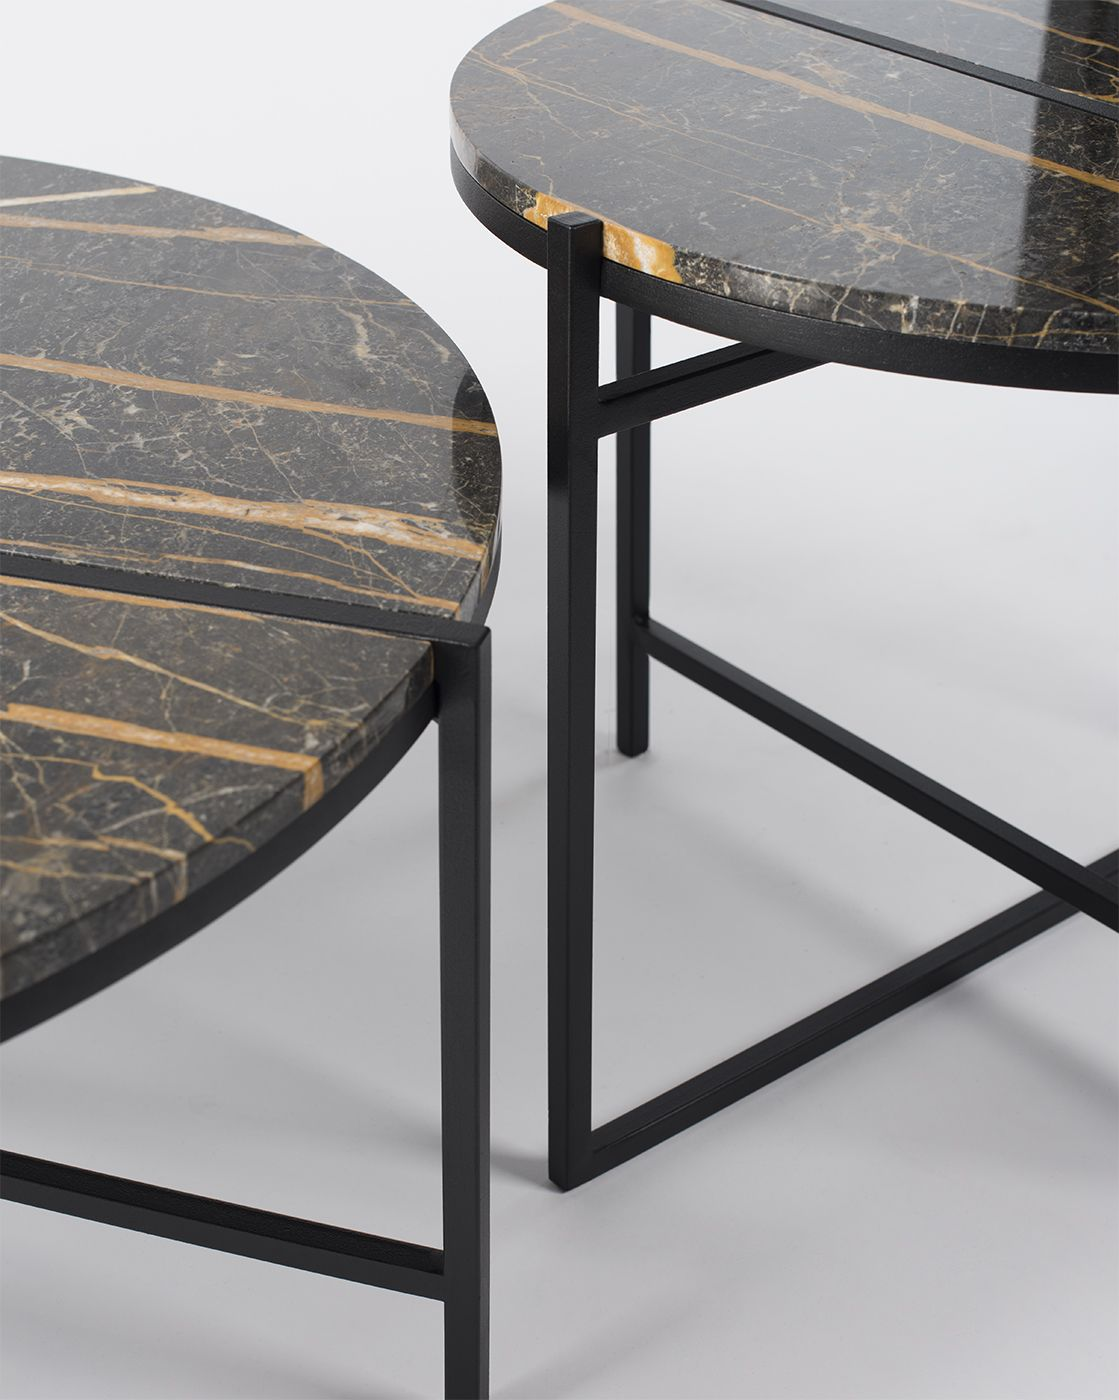 Ig Round Table Detail1 Jpg Marble Tables Design Black Marble Coffee Table Dining Table Marble